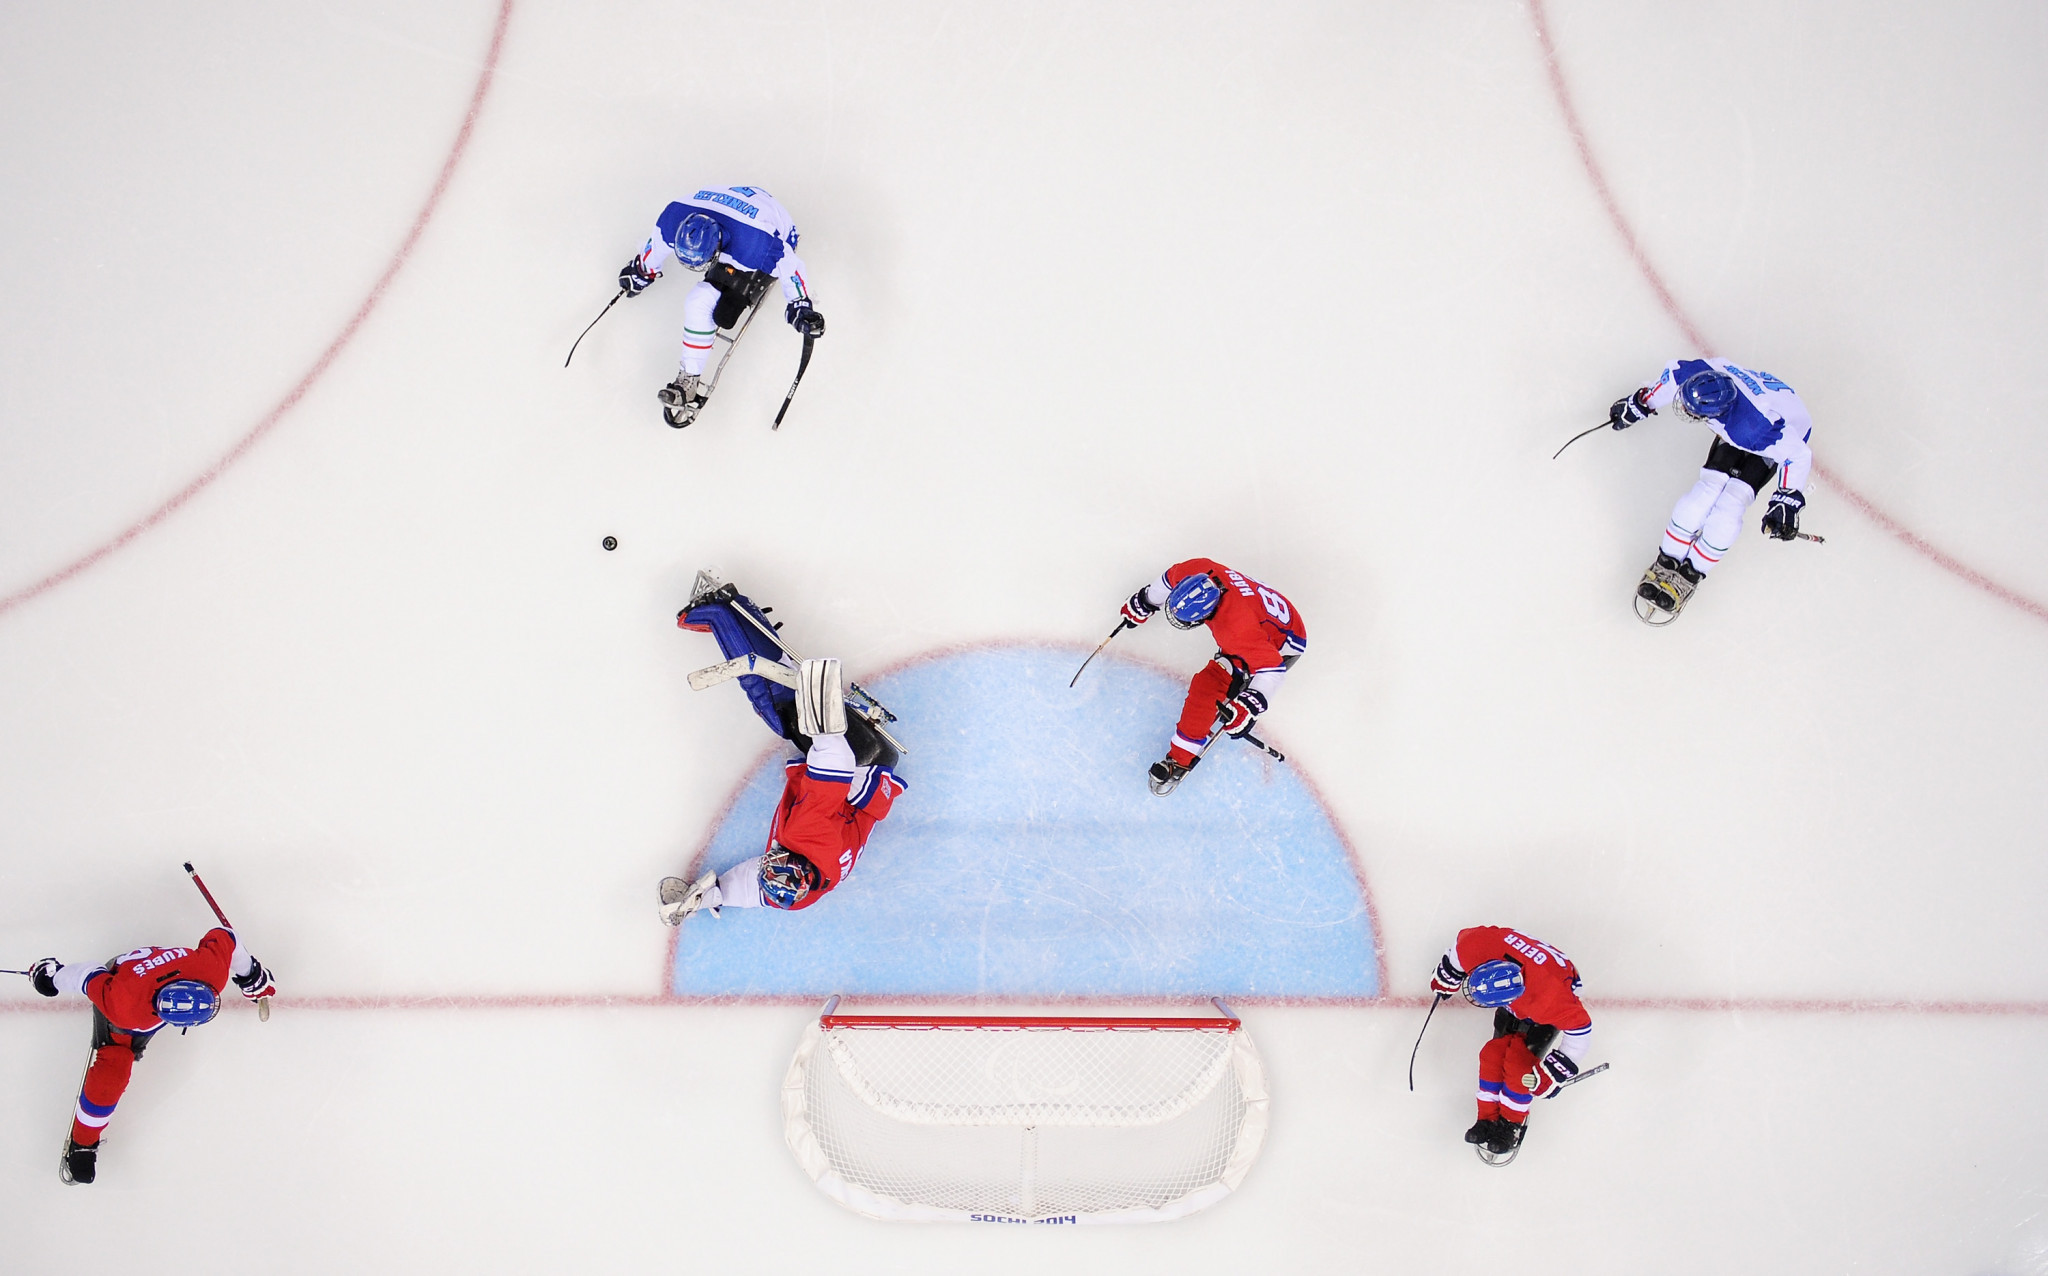 Czech Republic win first edition of Slovakia Cup prior to Para Ice Hockey World Championships